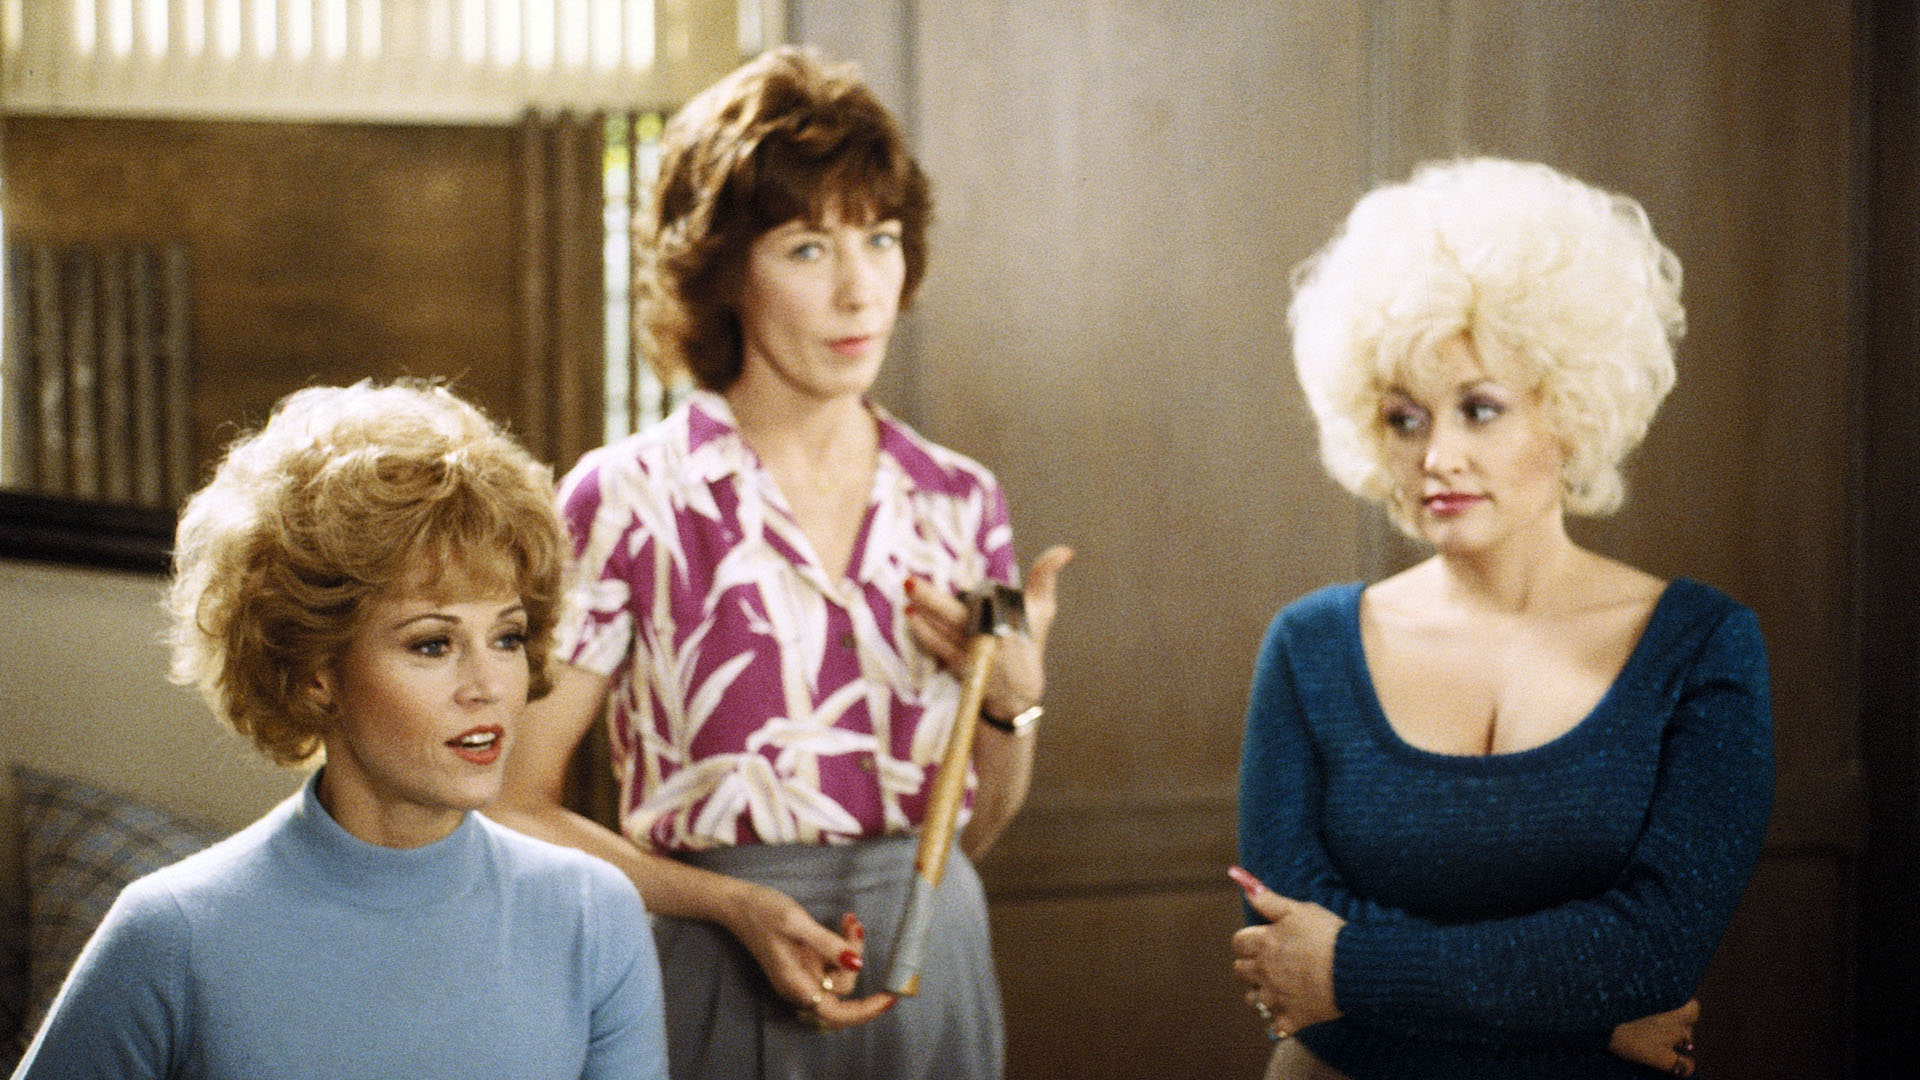 Jane Fonda, Lily Tomlin and Dolly Parton in 9 to 5